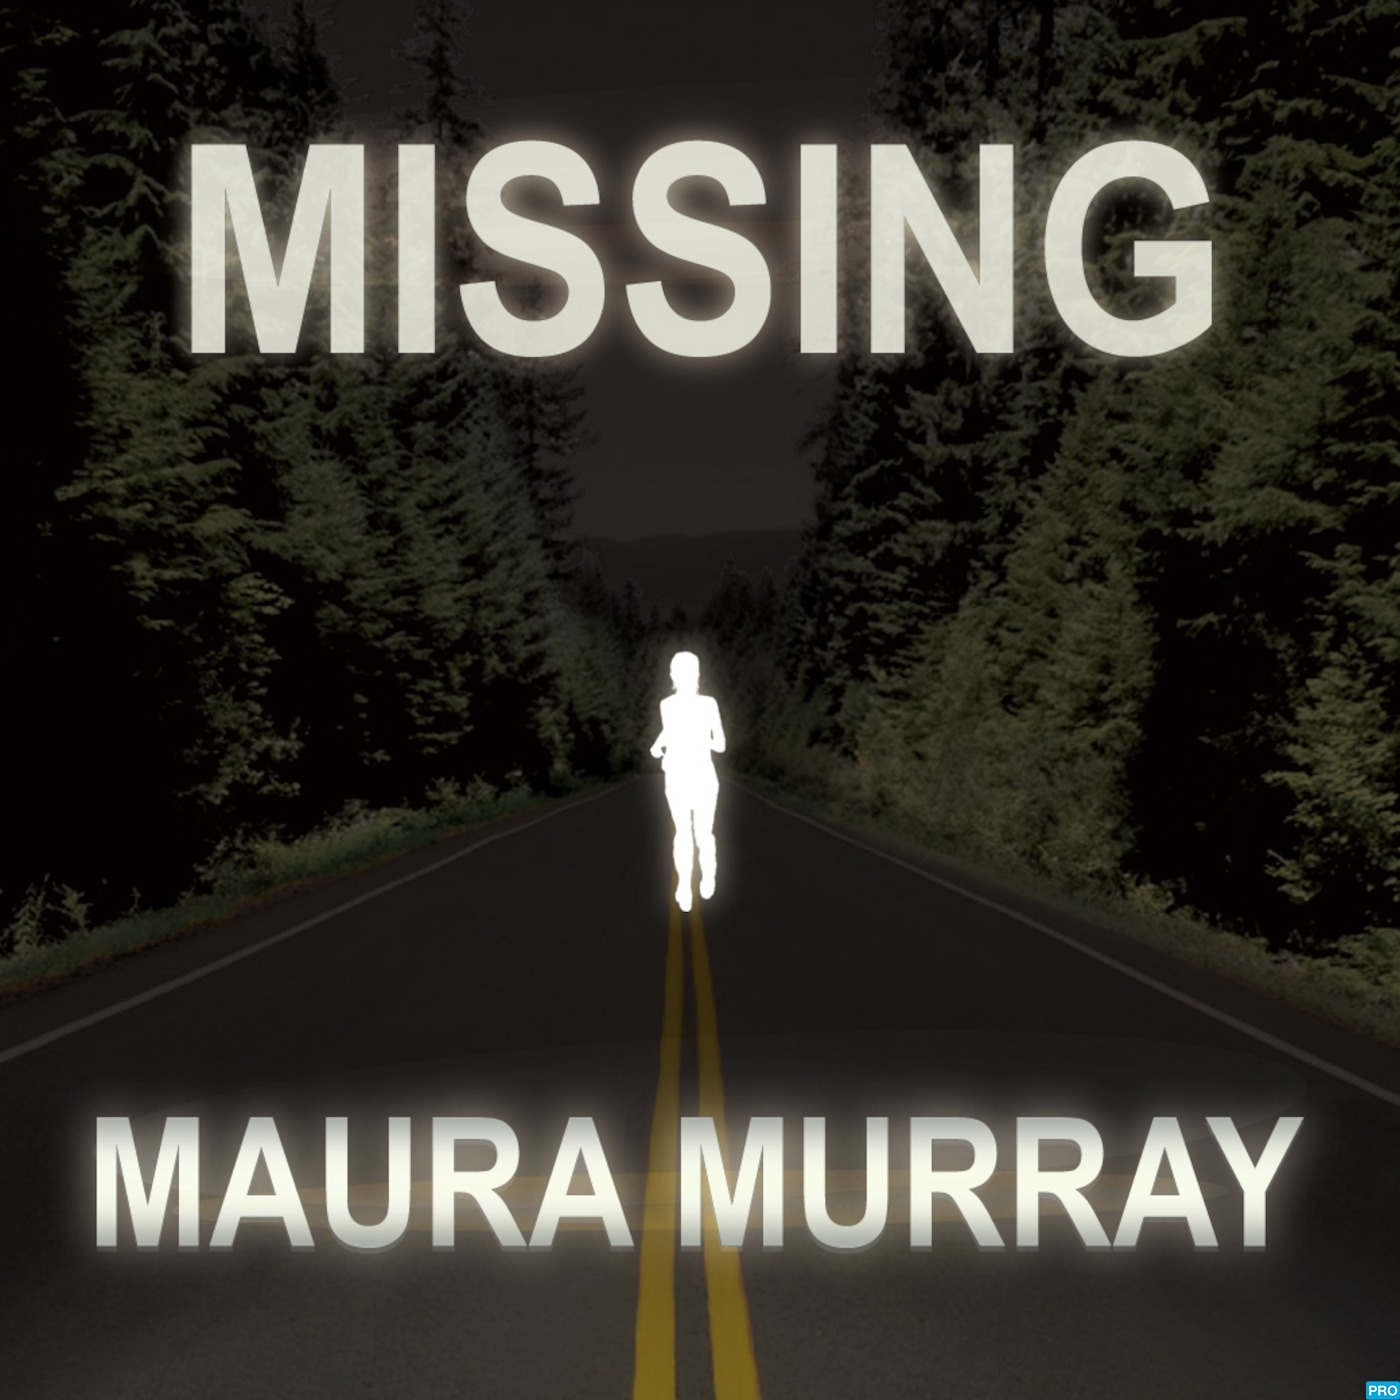 Missing Maura Murray Logo